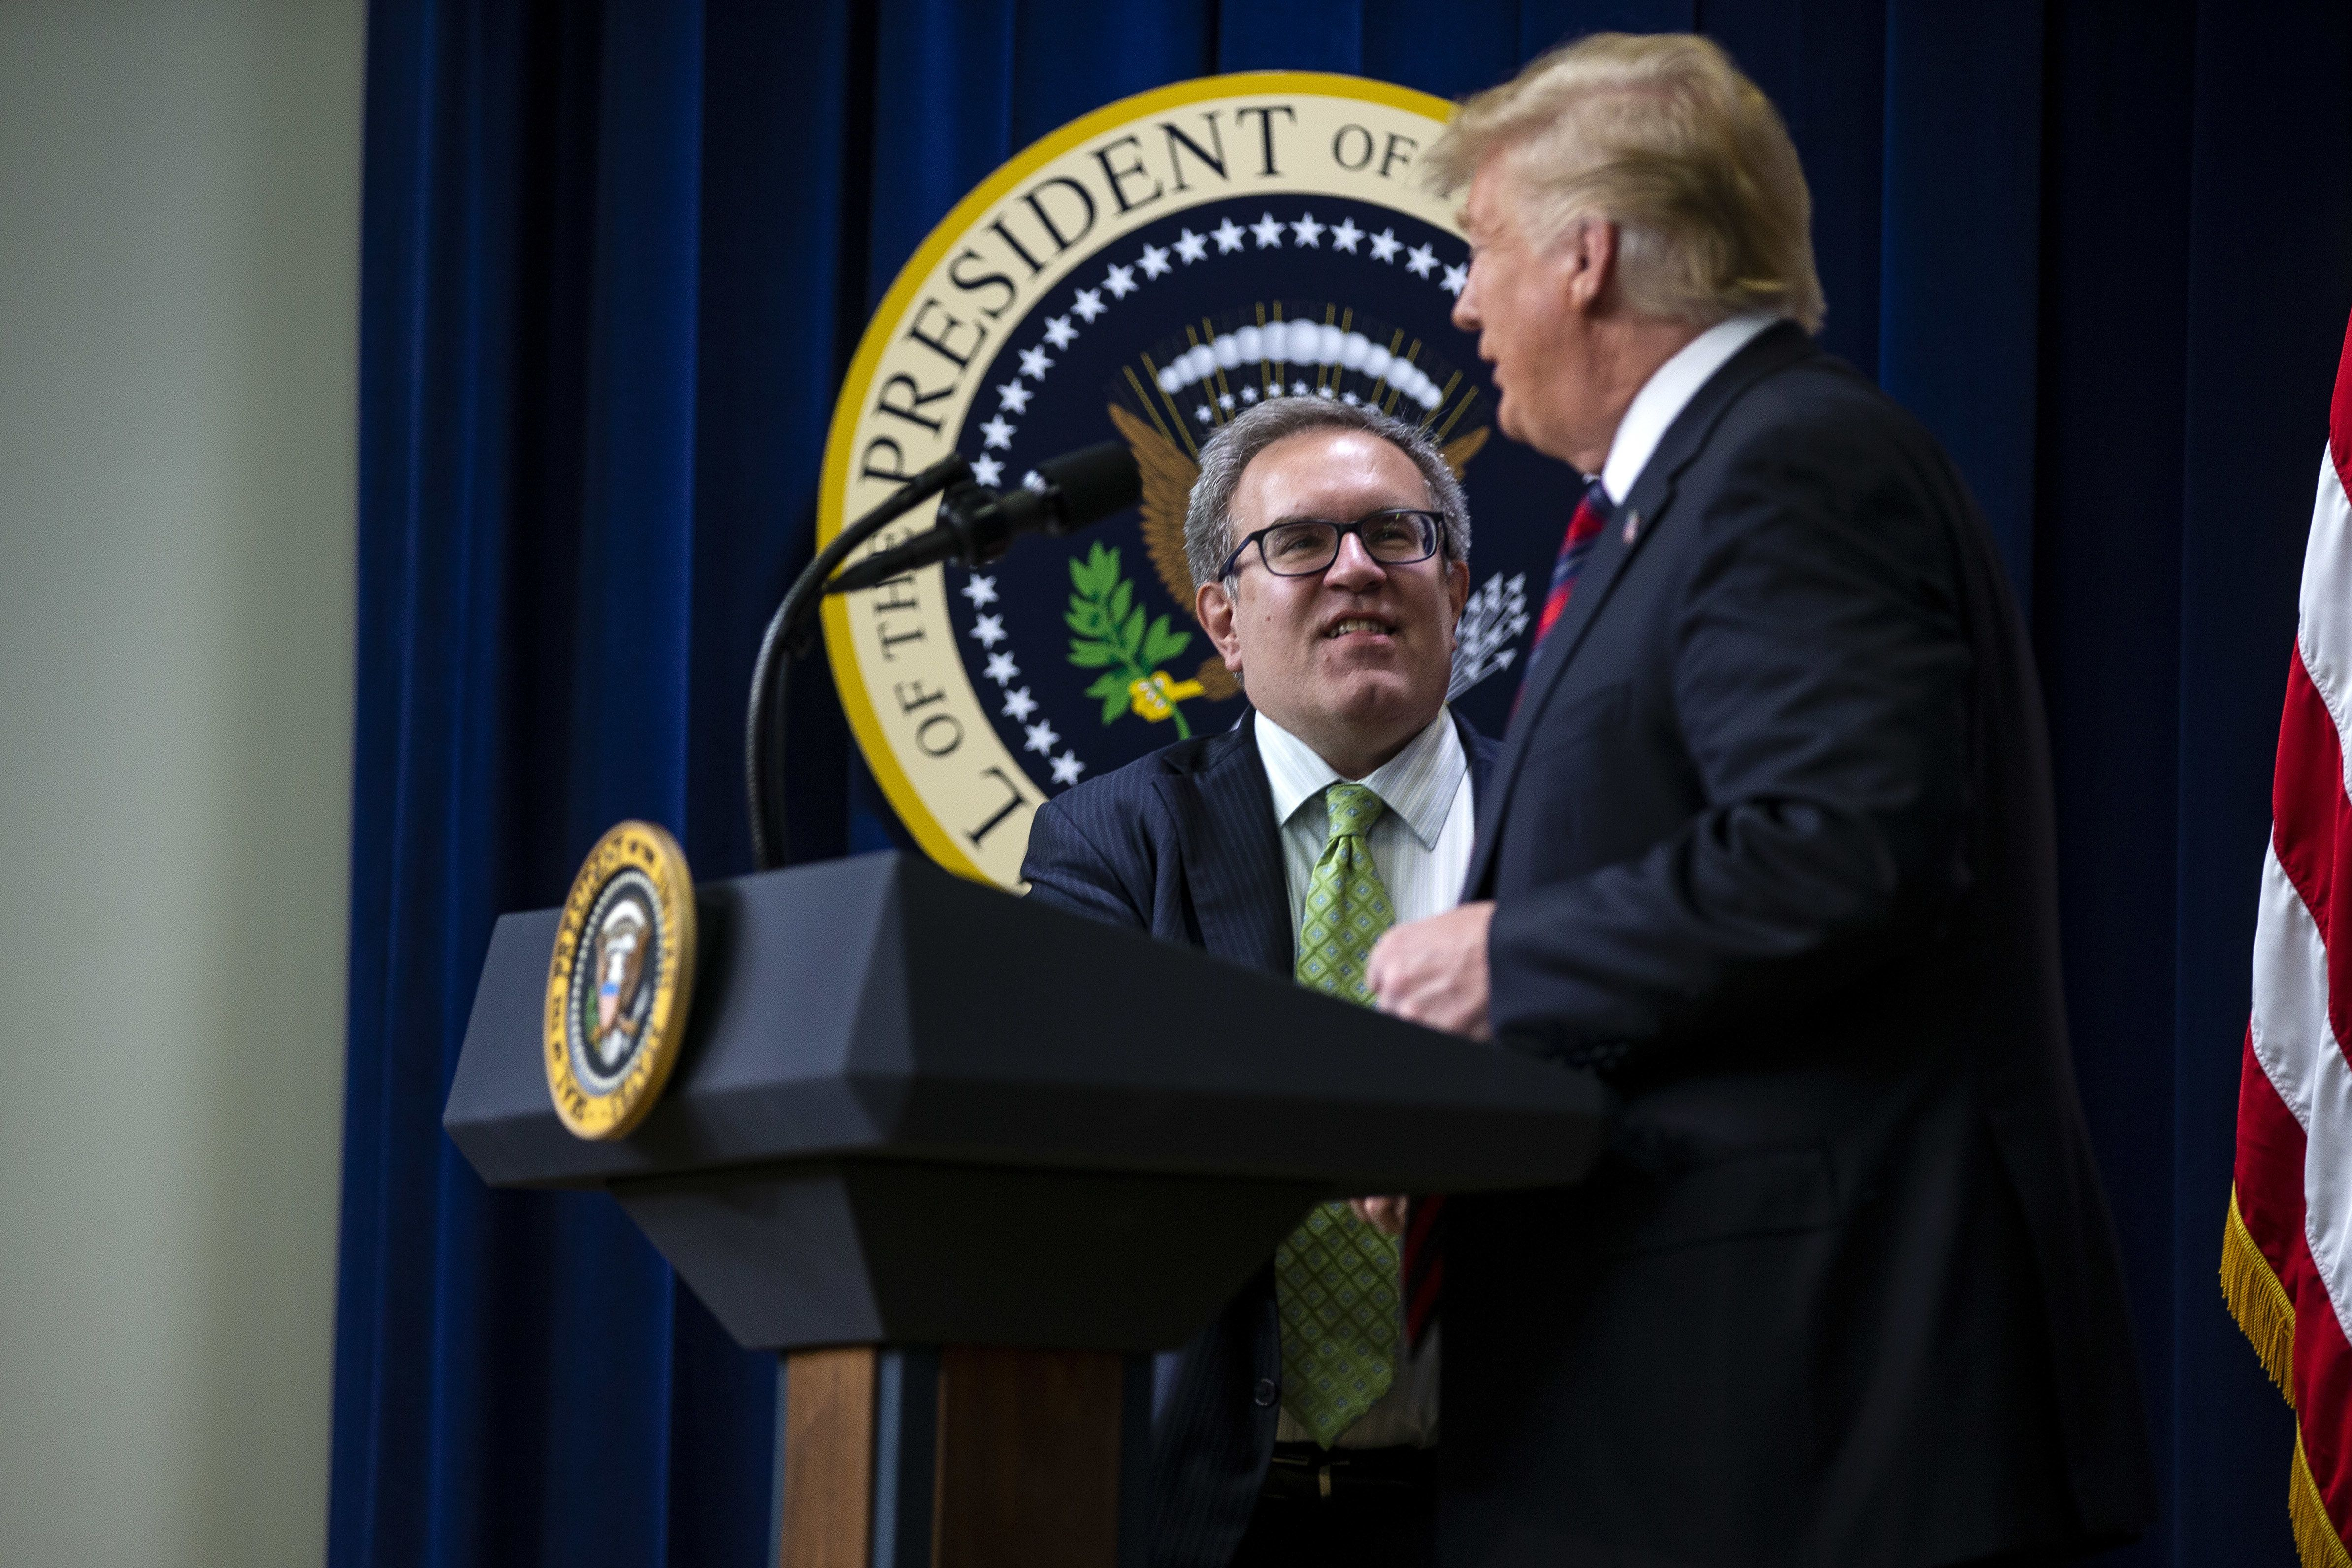 Andrew Wheeler, acting administrator of the Environmental Protection Agency (EPA), arrives on stage with U.S. President Donald Trump during the White House State Leadership Day conference in Washington, D.C., U.S., on Tuesday, Oct. 23, 2018. Trump said he is passing responsibility to Congress for responding to the killing of U.S.-based journalist Jamal Khashoggi at a Saudi consulate in Istanbul. Photographer: Al Drago/Bloomberg via Getty Images